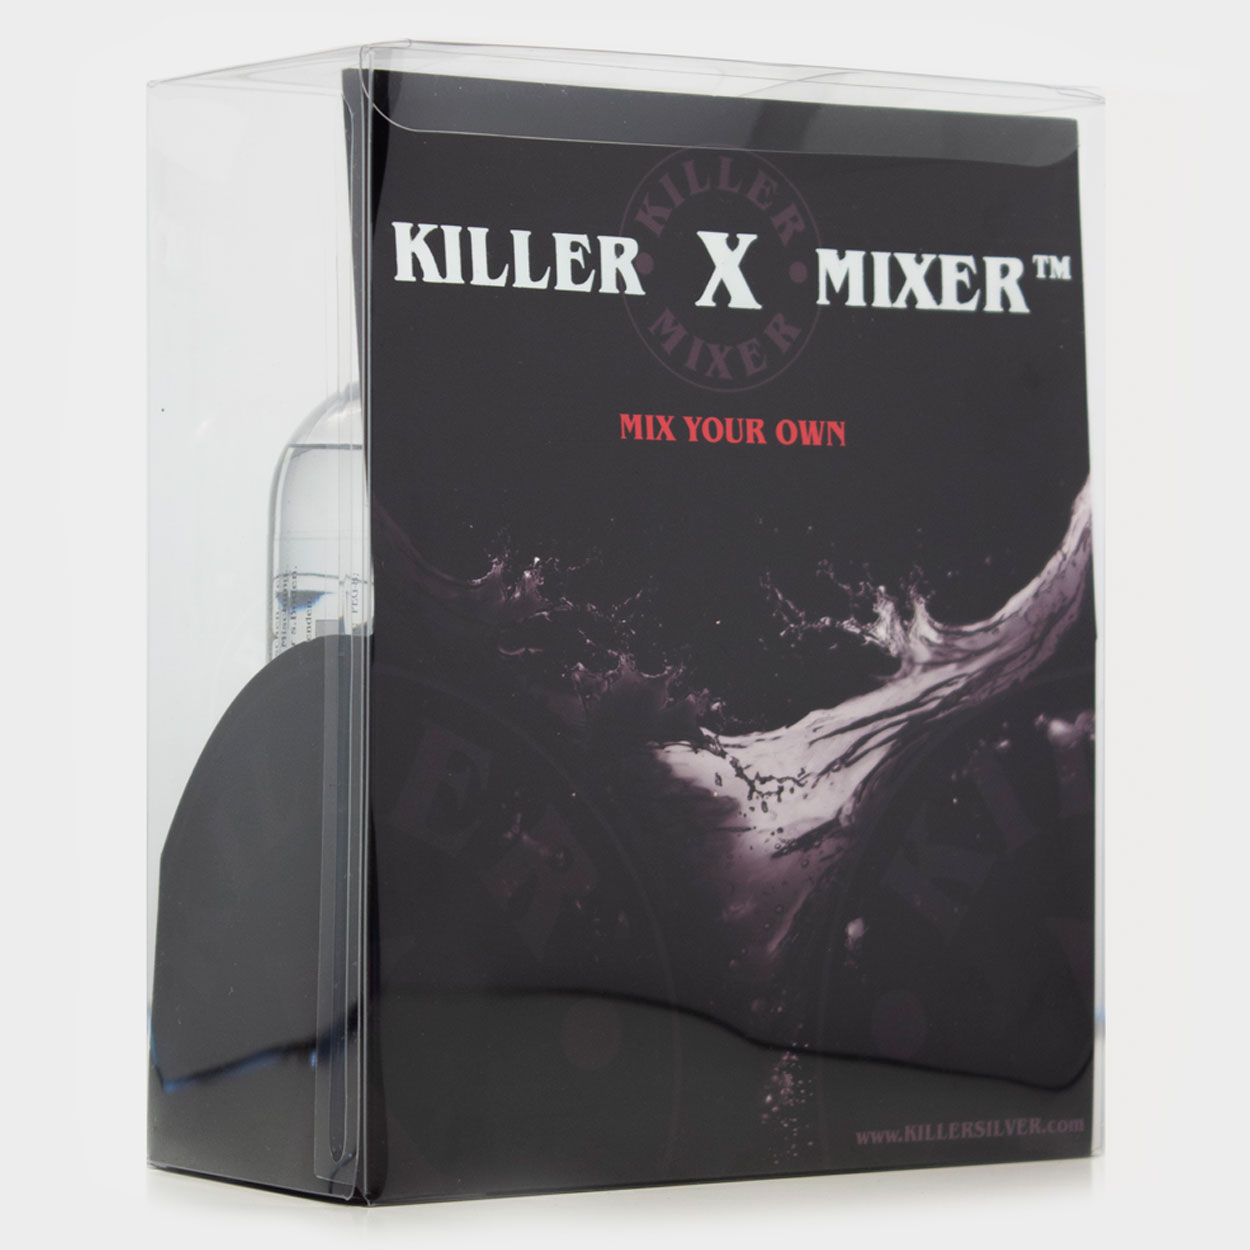 Killer X Mixer Combo Pack - Mix your own - 2 bottles - Gray wash mixing set - 8.5 oz - Killer Silver